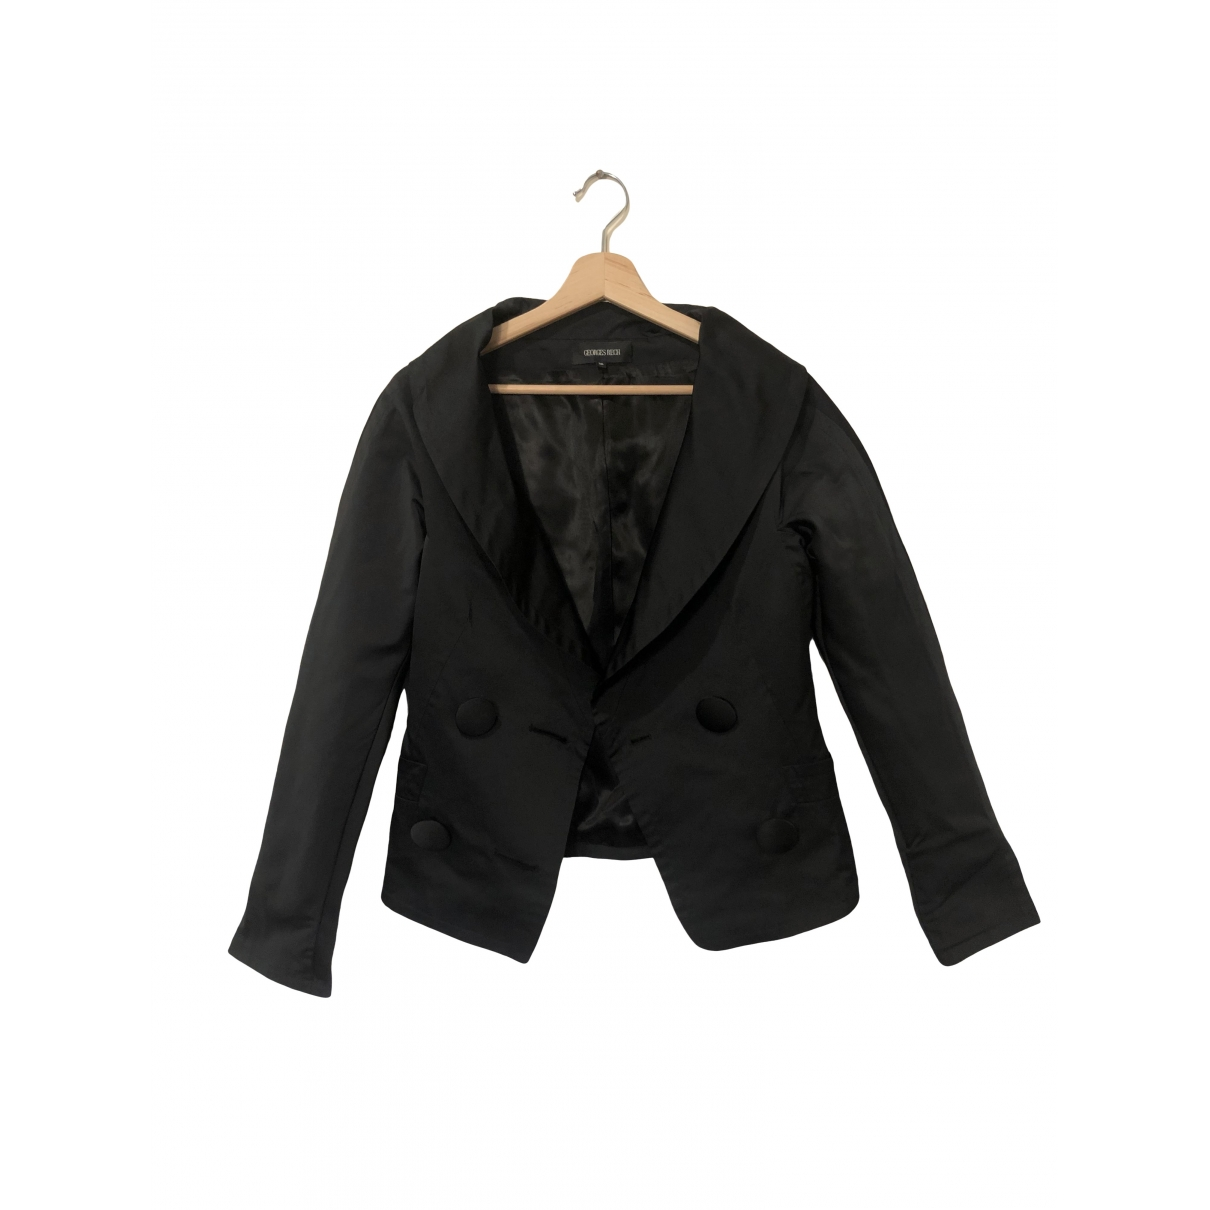 Georges Rech \N Black jacket for Women 36 FR